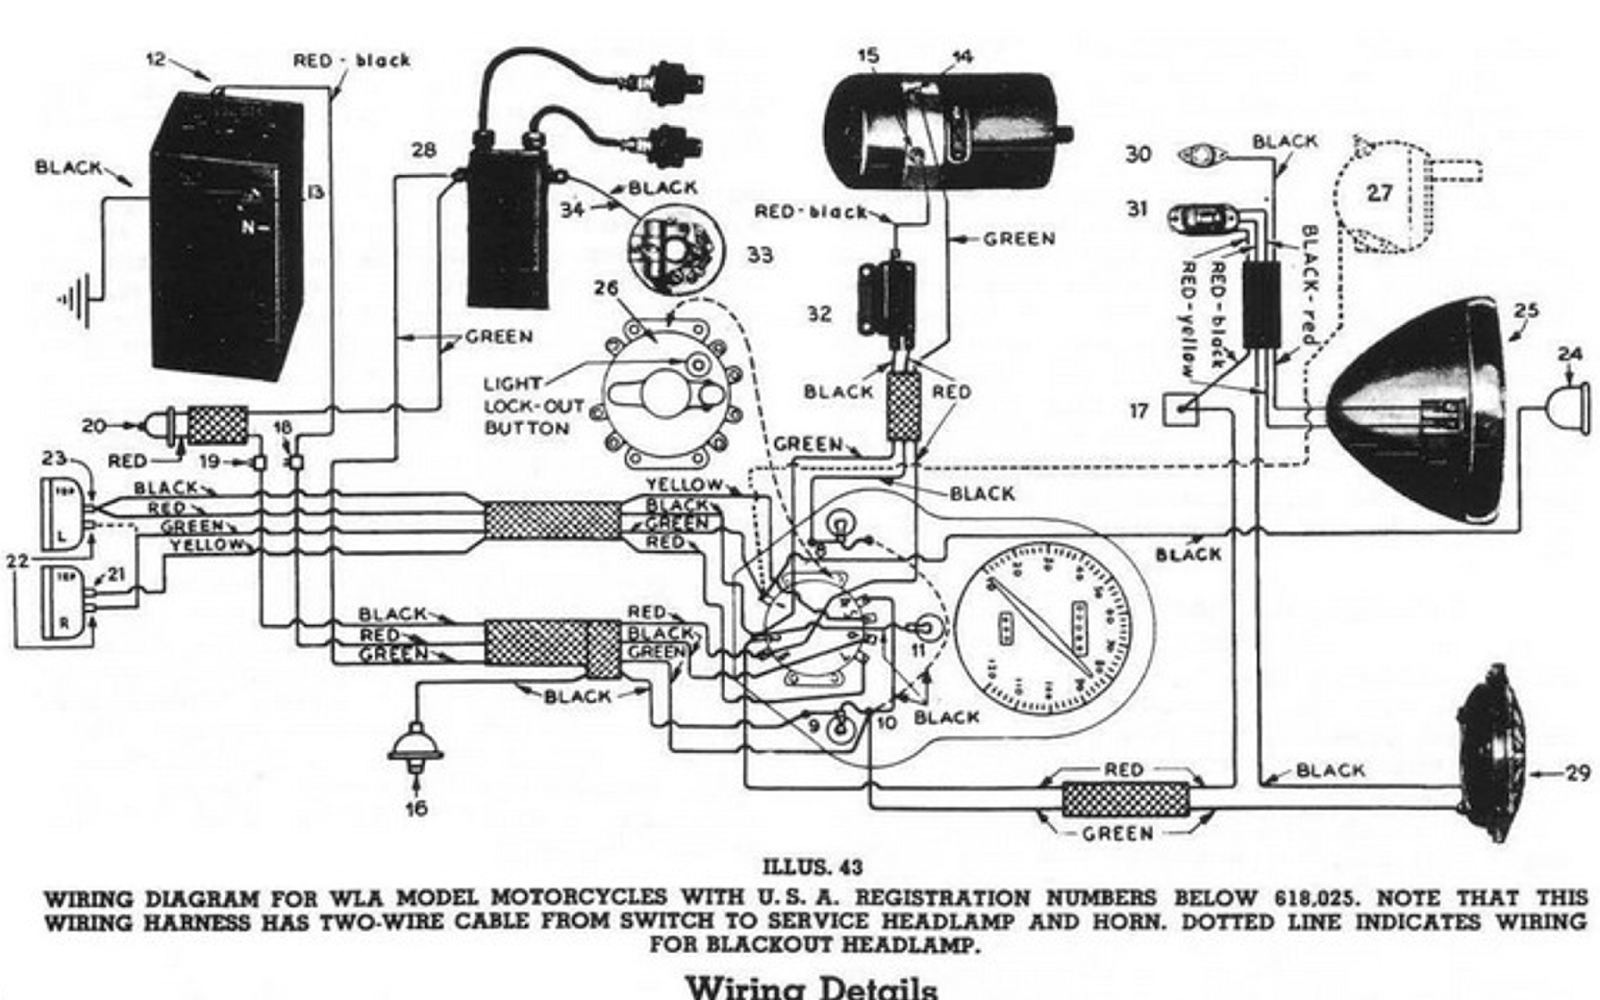 hight resolution of harley davidson wiring blog wiring diagram1941 harley davidson wl restoration re wiring the harley davidson wl